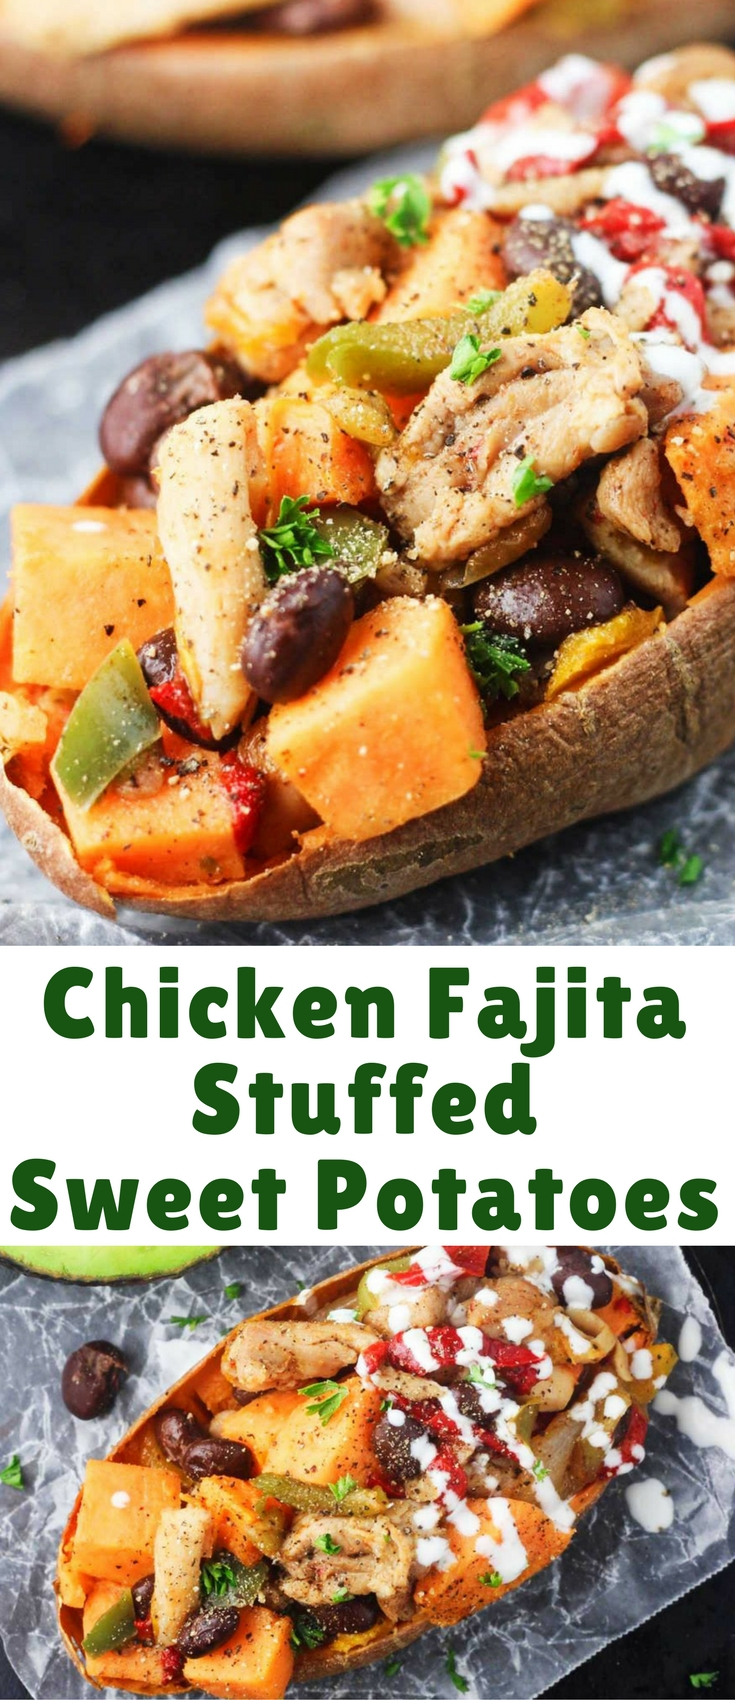 Deliciously flavorful sweet potato skins stuffed with juicy chicken and a combination of peppers and spices.